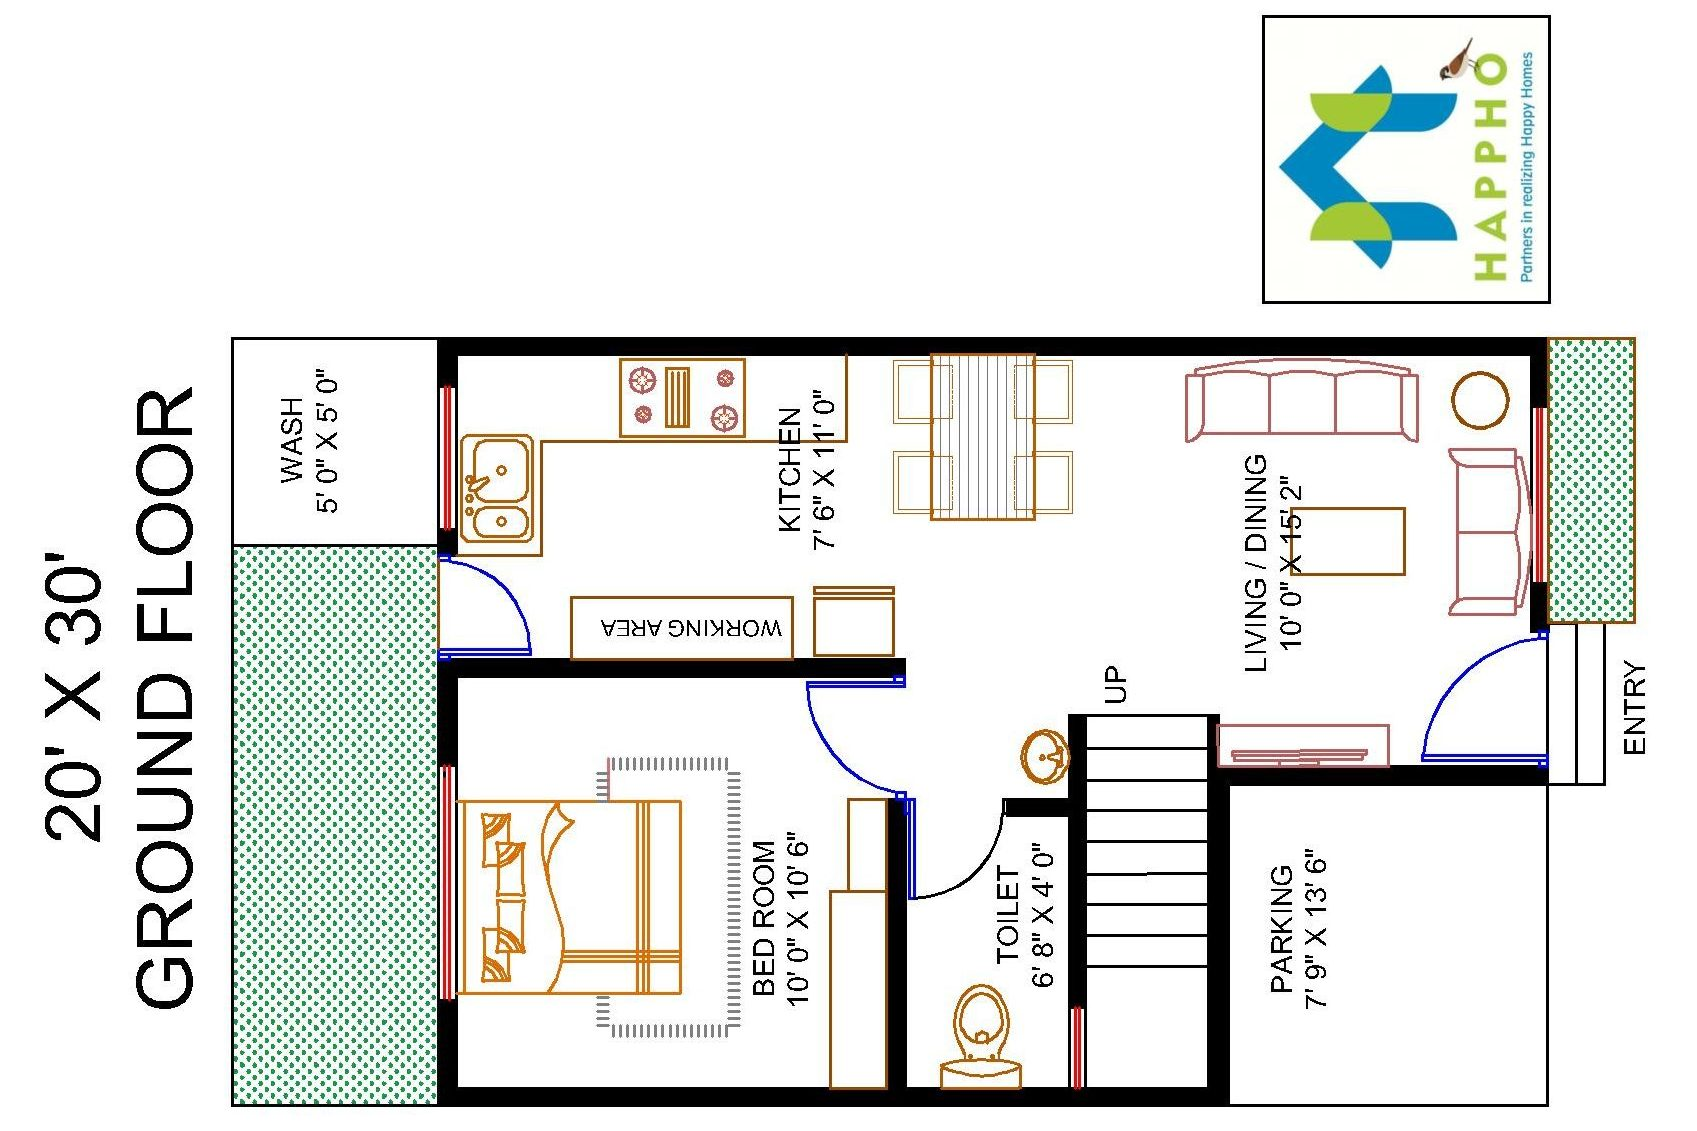 Floor plan for 20 x 30 plot 1 bhk 600 square feet 67 for 20x30 house designs and plans